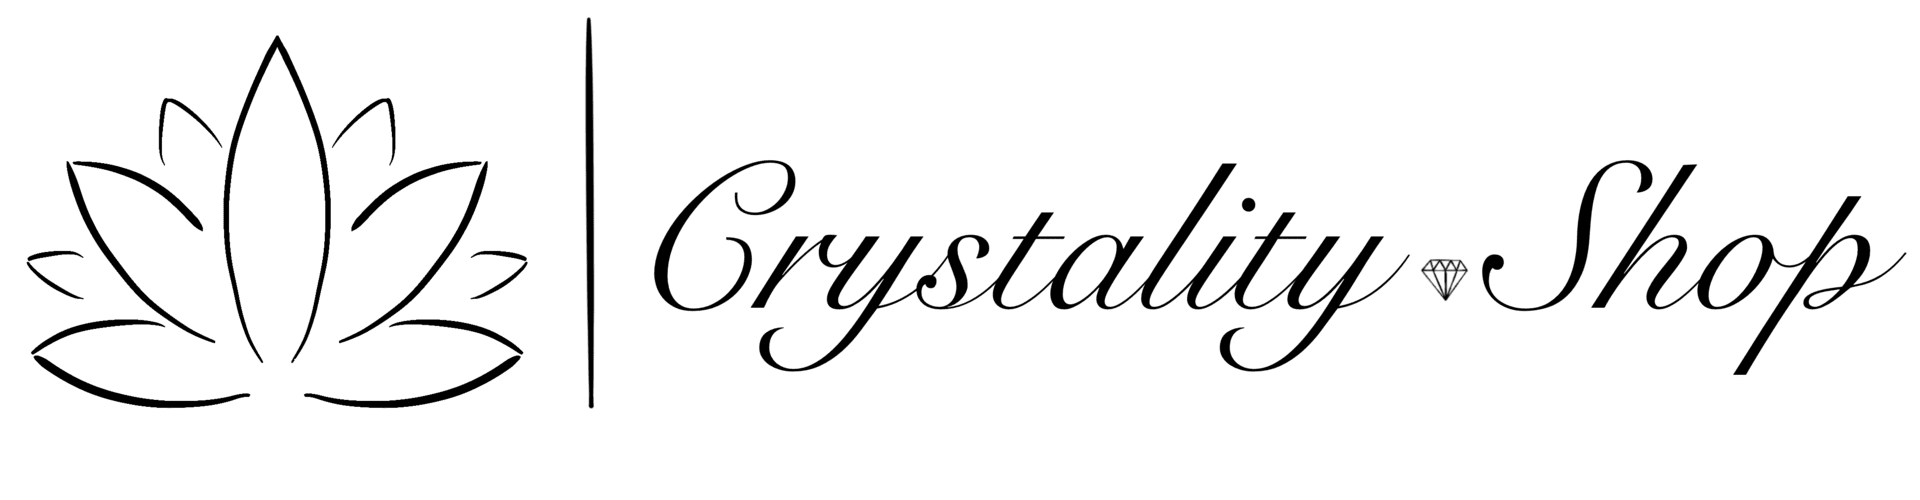 Crystality.Shop